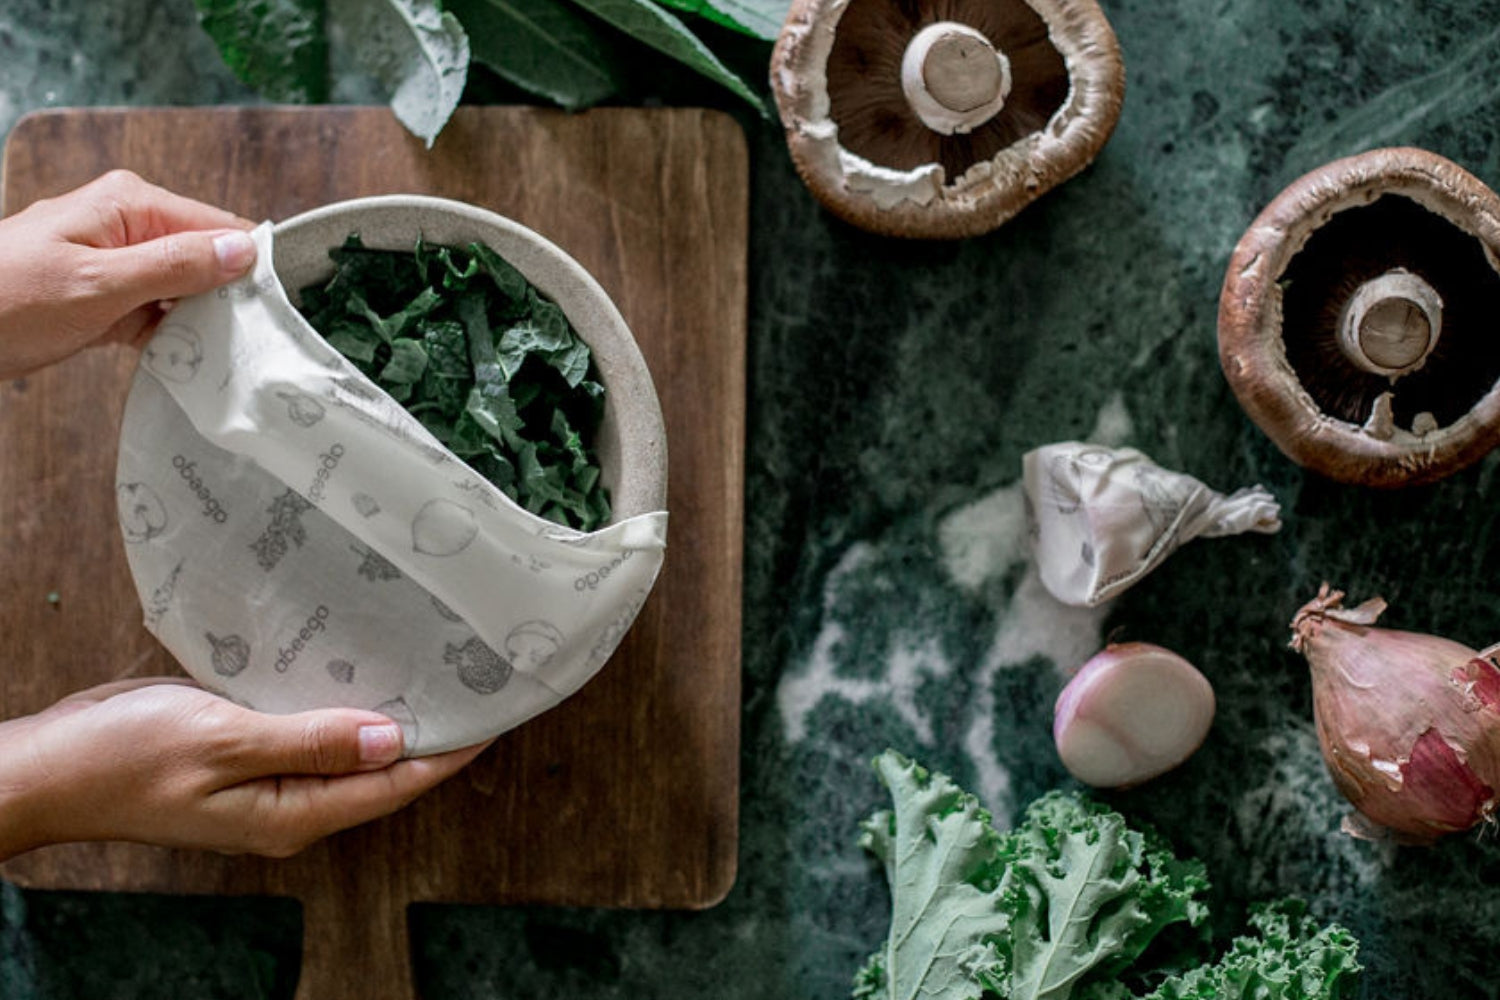 Wrap kale and mushrooms in Abeego and keep them fresh for longer. Beeswax food wraps.